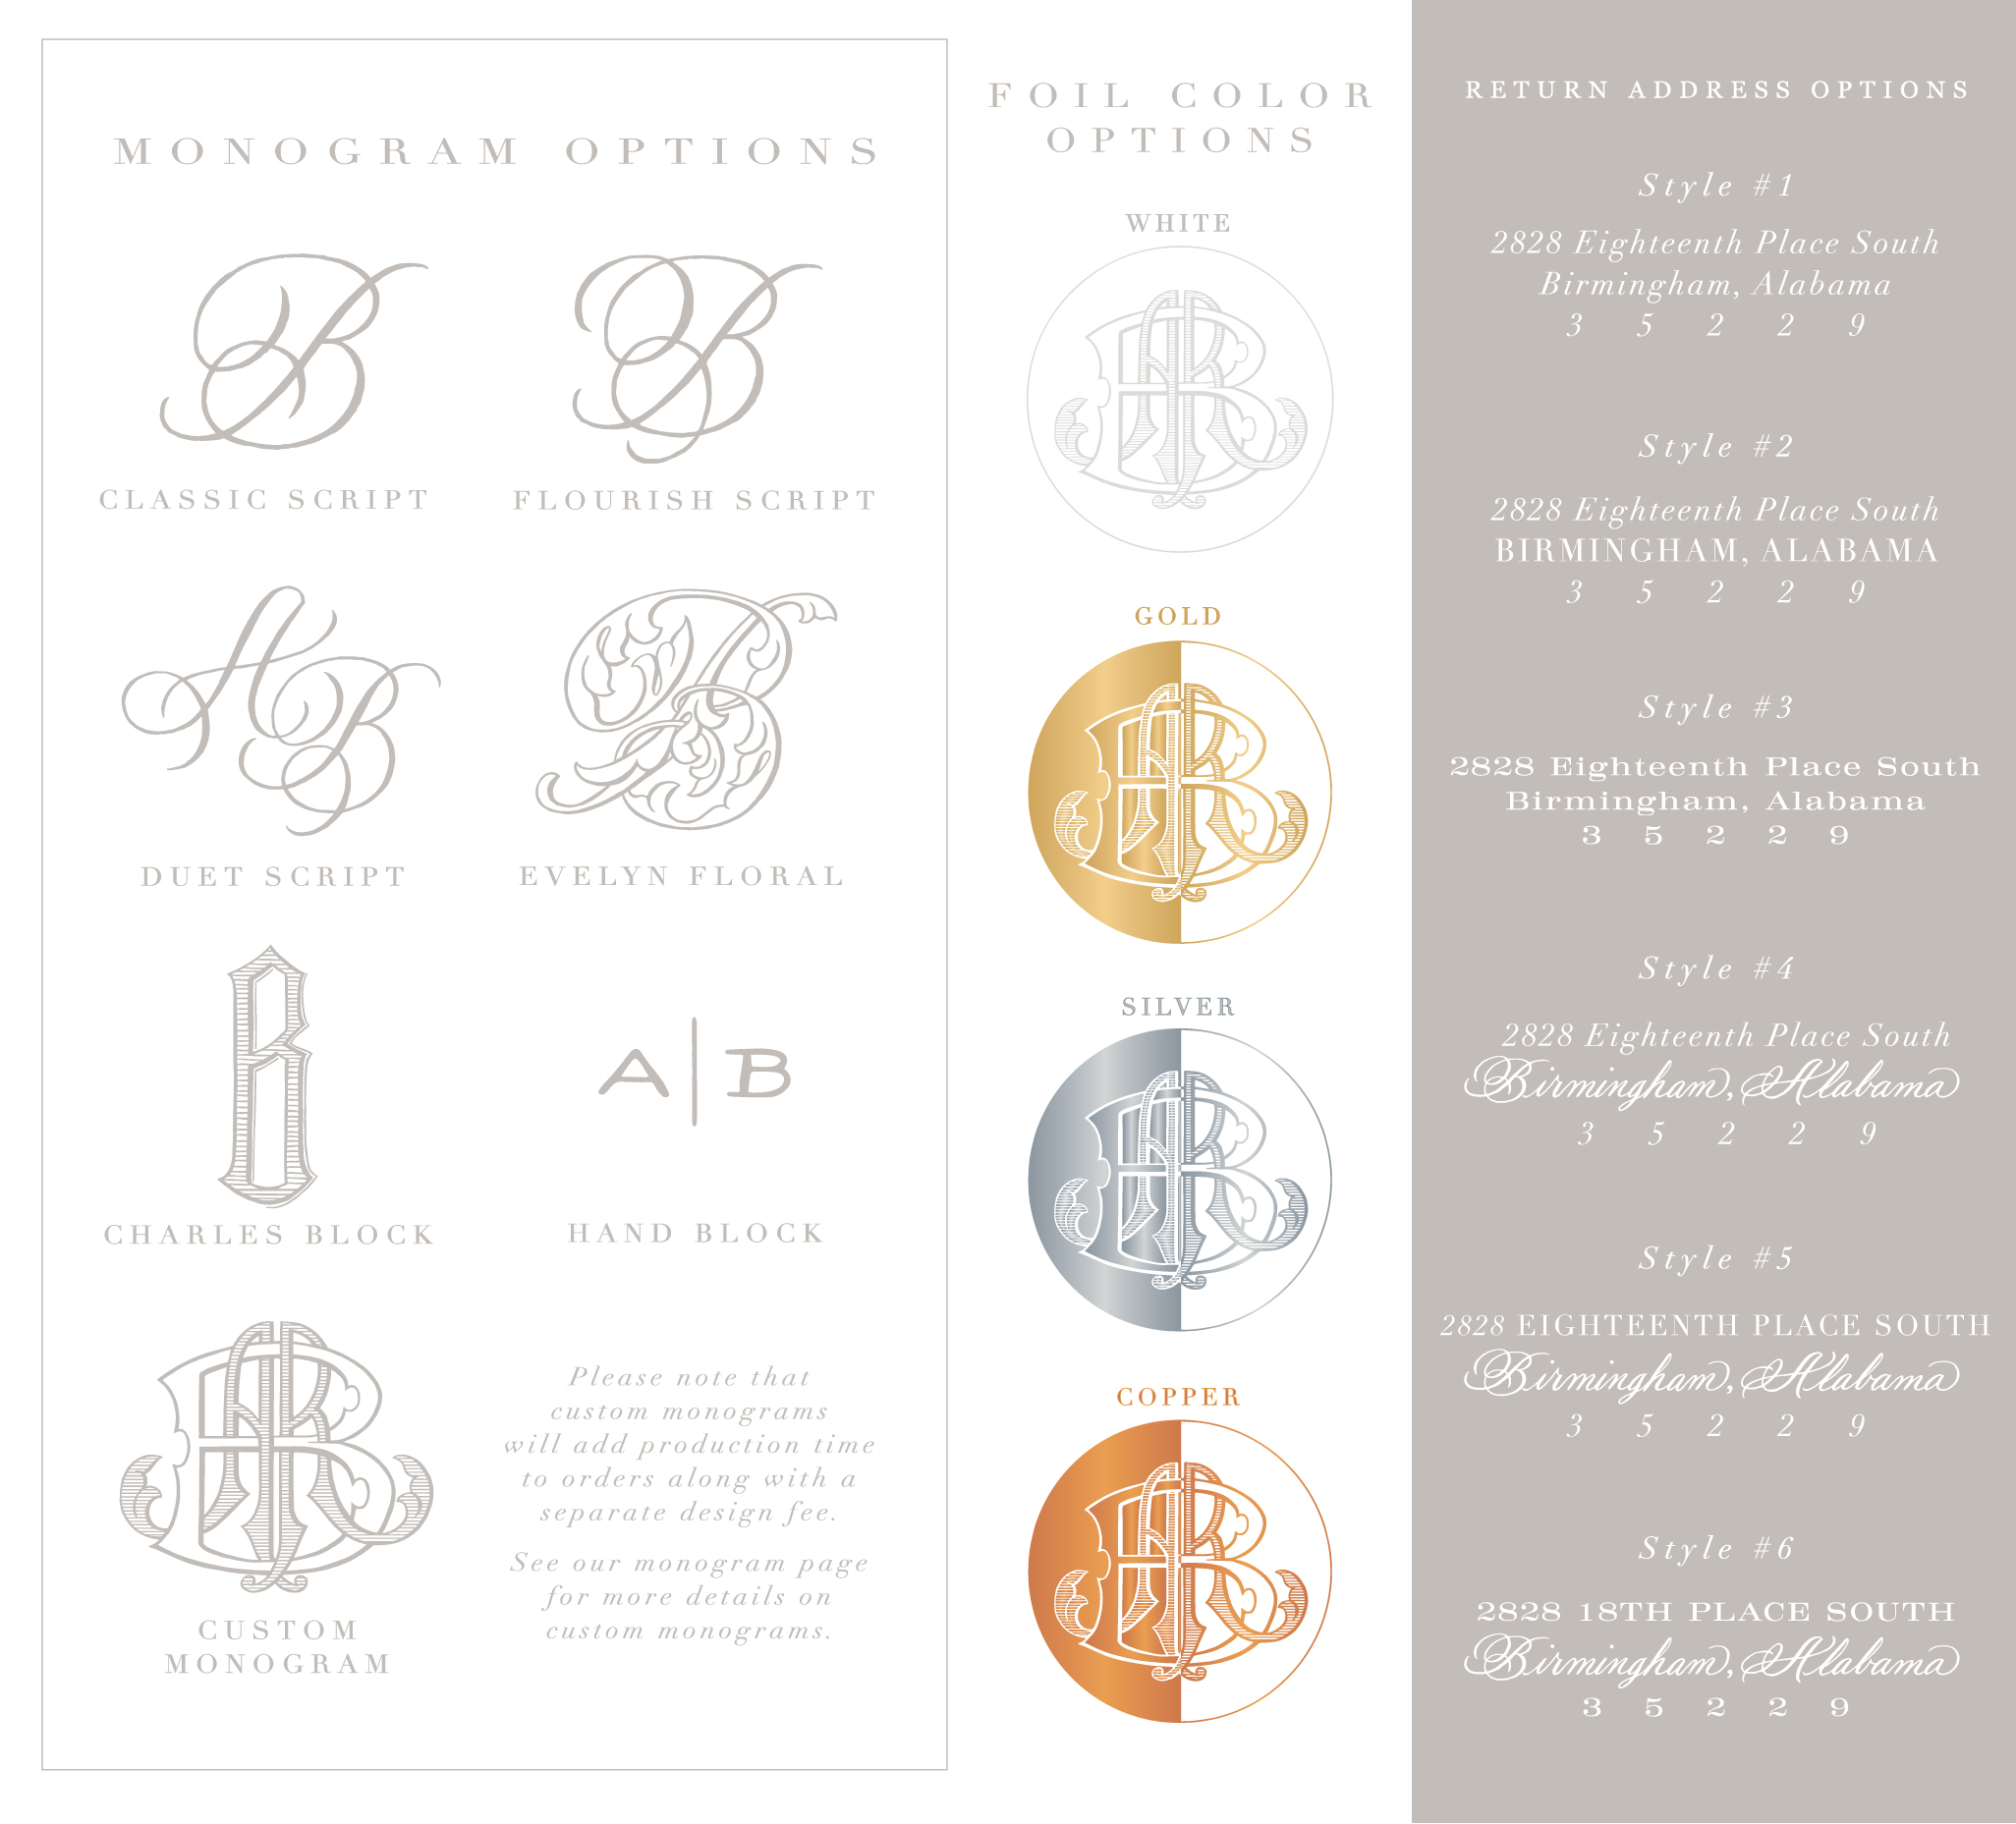 WHITE-Color-Stationery-Chart-#3.jpg